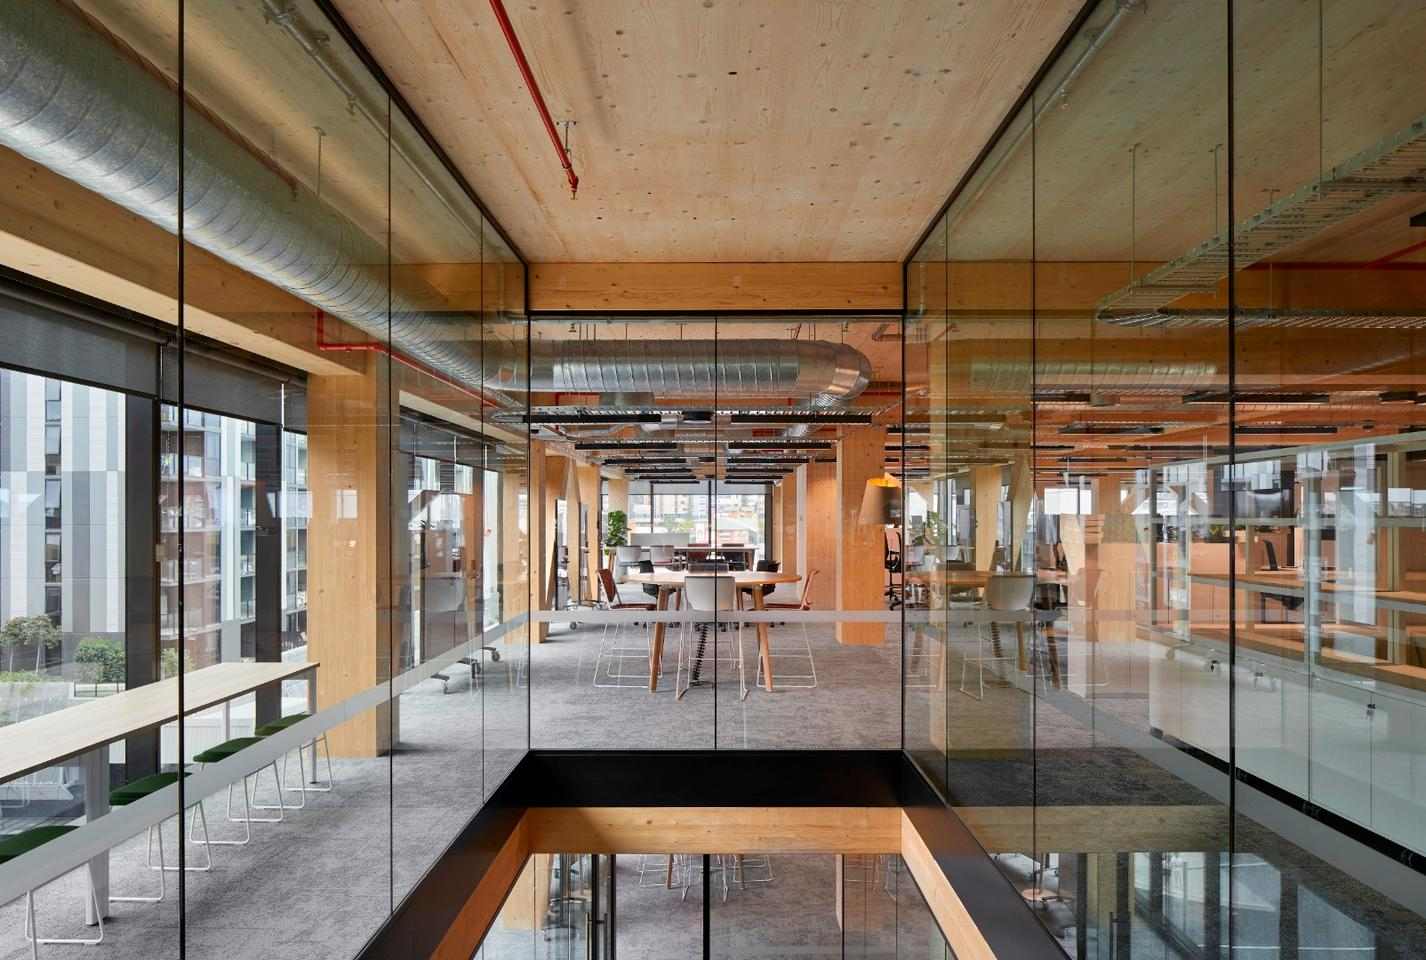 Inside the recently completed 25 King, a timber tower in Brisbane, Australia